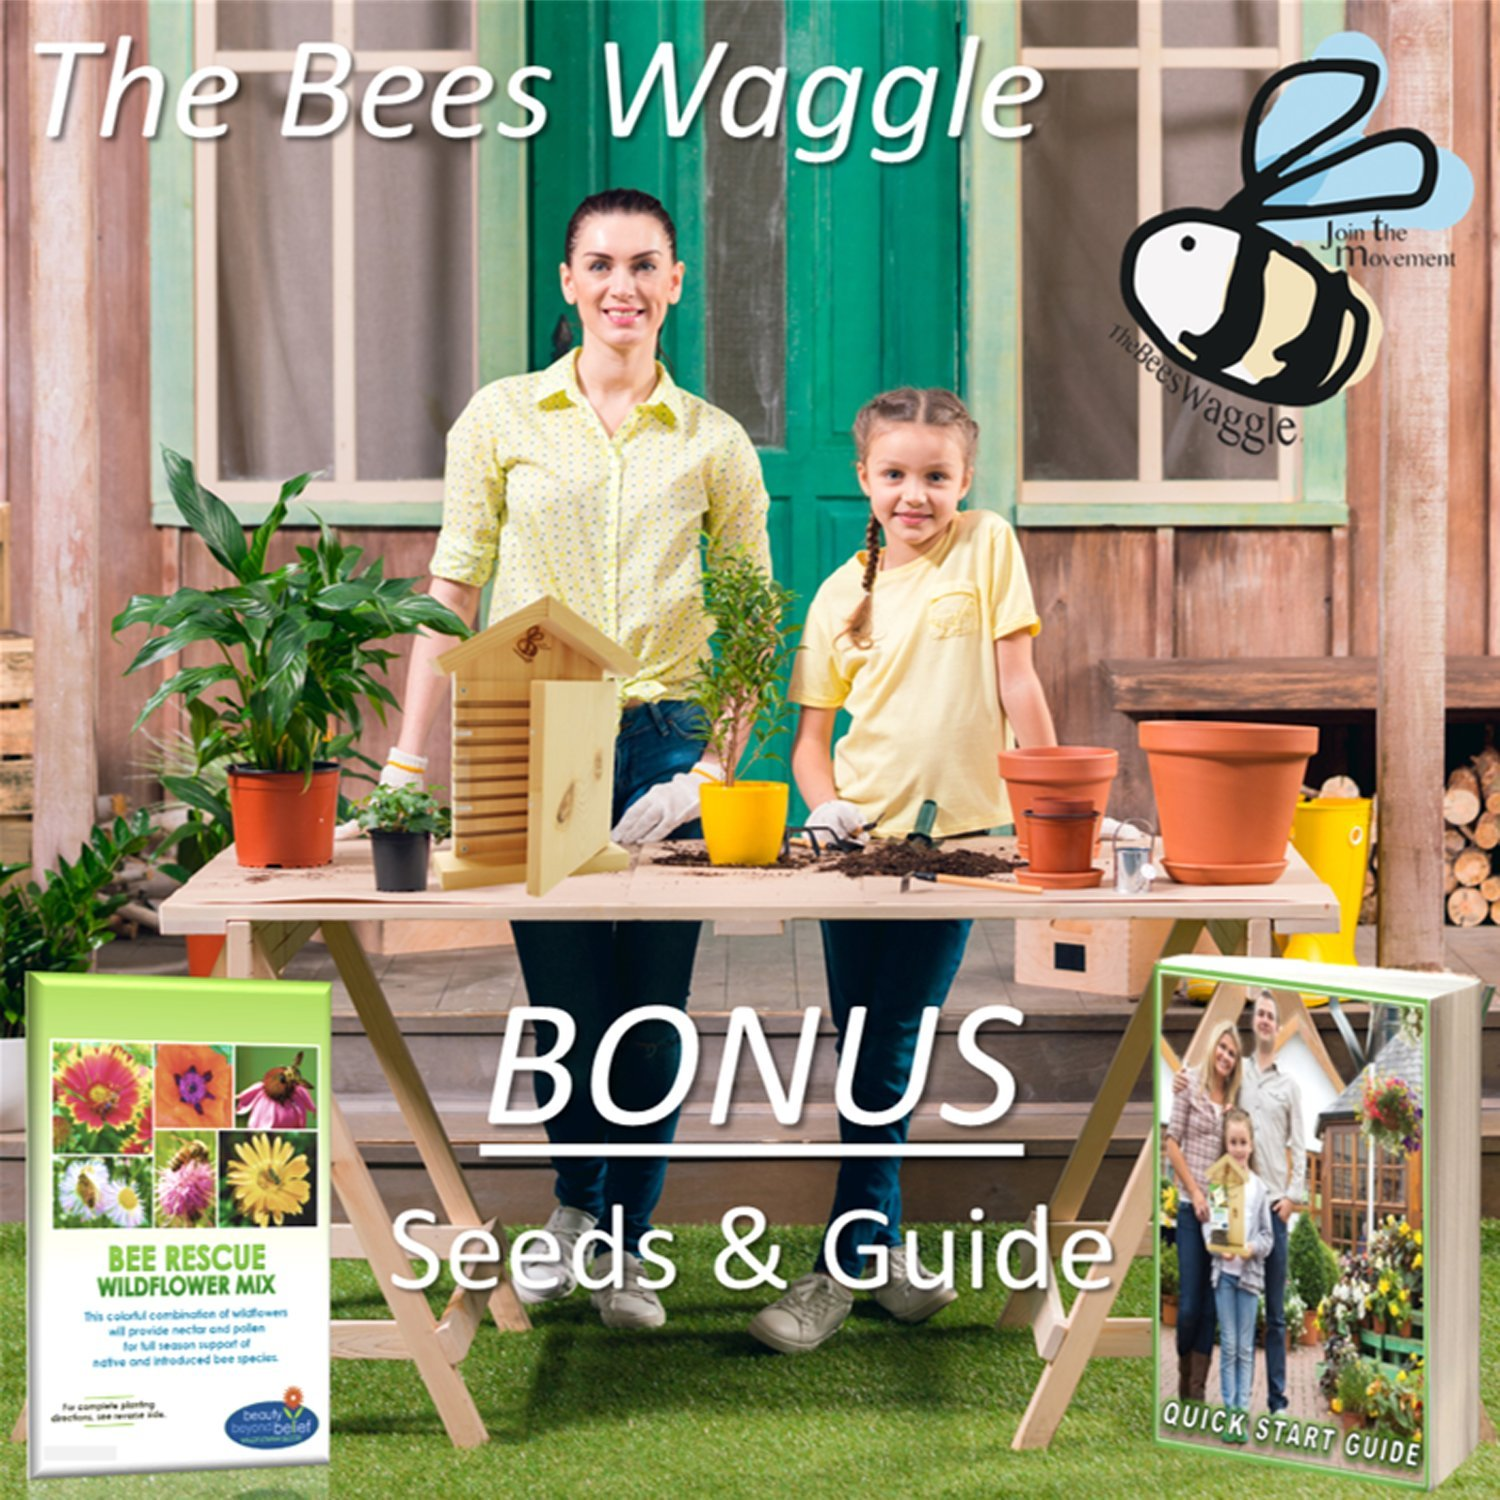 CRACK'N Special - Save $30 Now - Mason Bee House for Solitary Bees - Bonus Viewing Window, Wildflower Seeds, Guide - Wooden Beeblock Bee Home Nest to Attract Wild Native Bees to Garden - Great Gift by The Bees Waggle (Image #9)